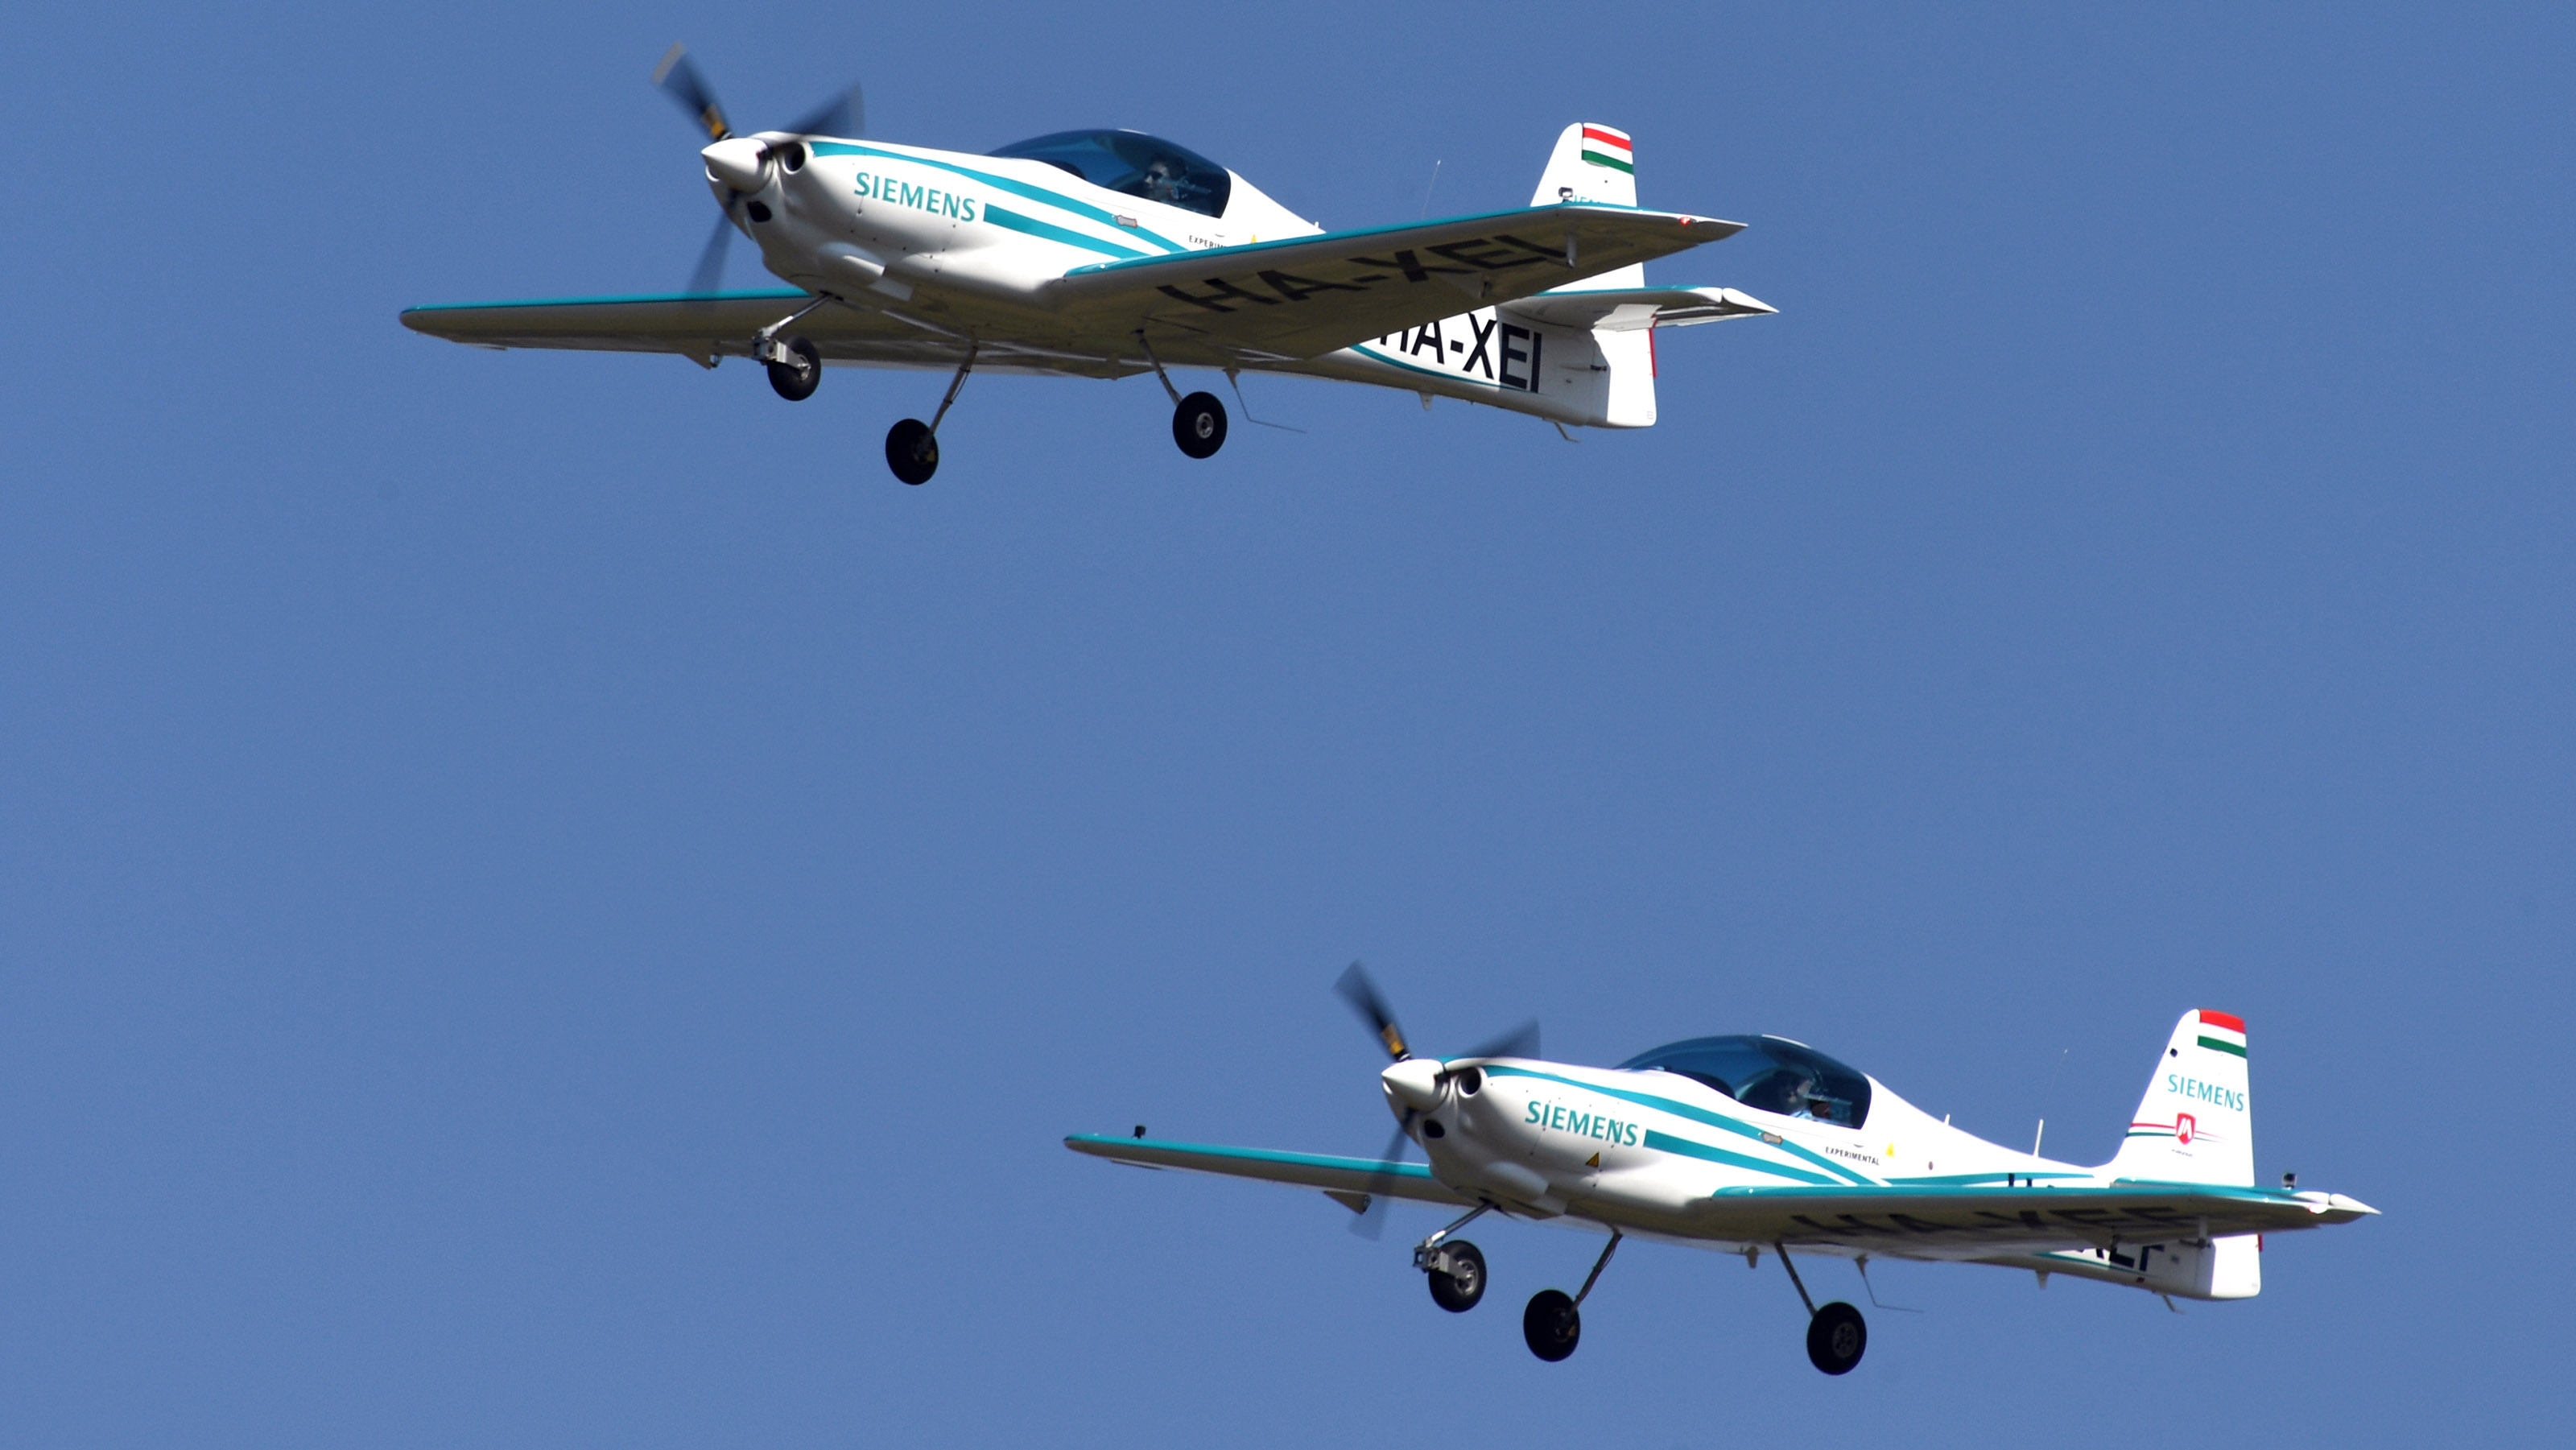 Two Magnus eFusion aircraft, each powered by a Siemens electric motor, make a flyby. Photo courtesy of AERO Friedrichshafen.